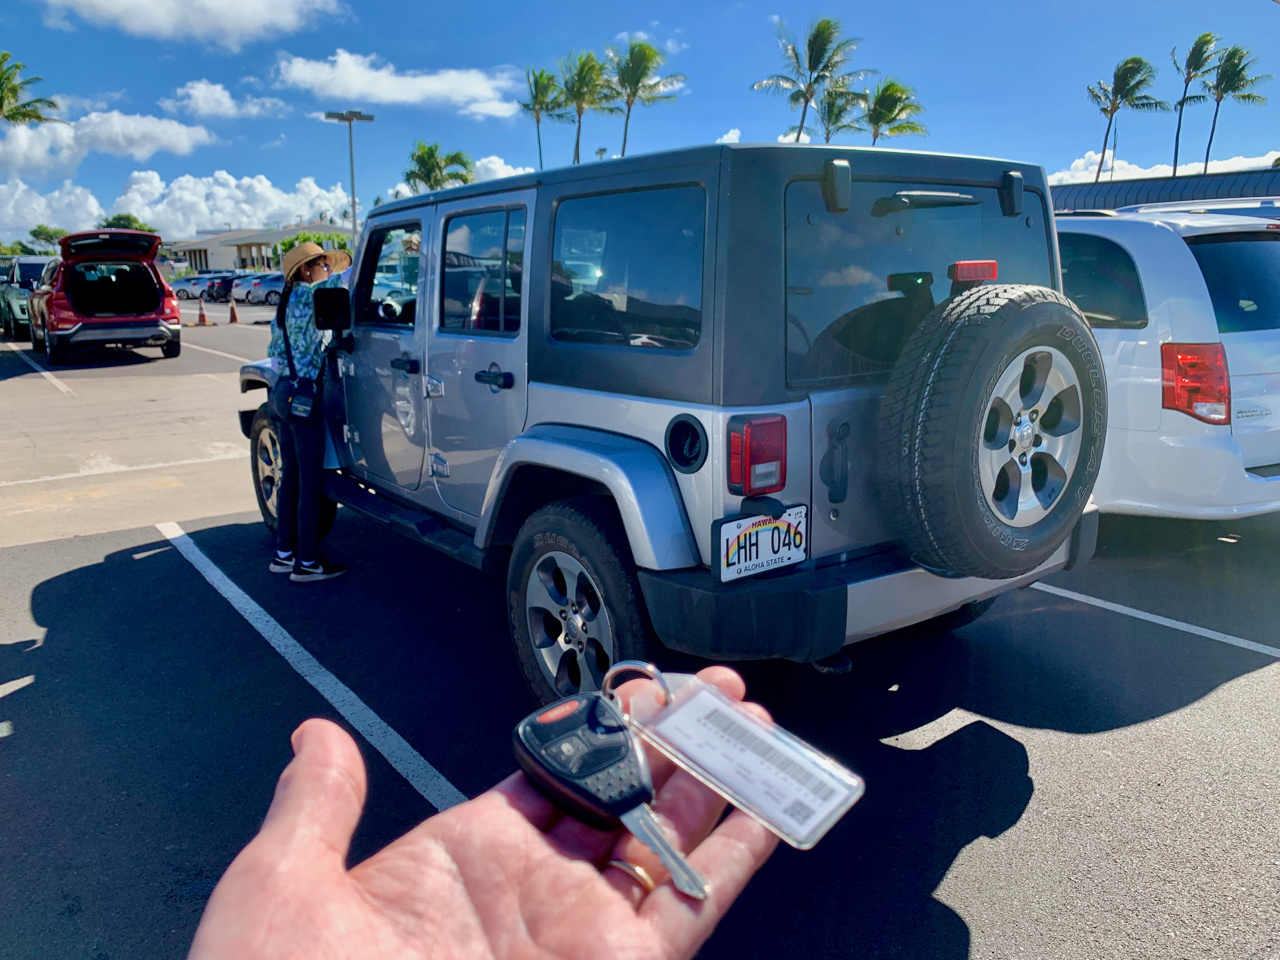 Customer at car rental lot with a key